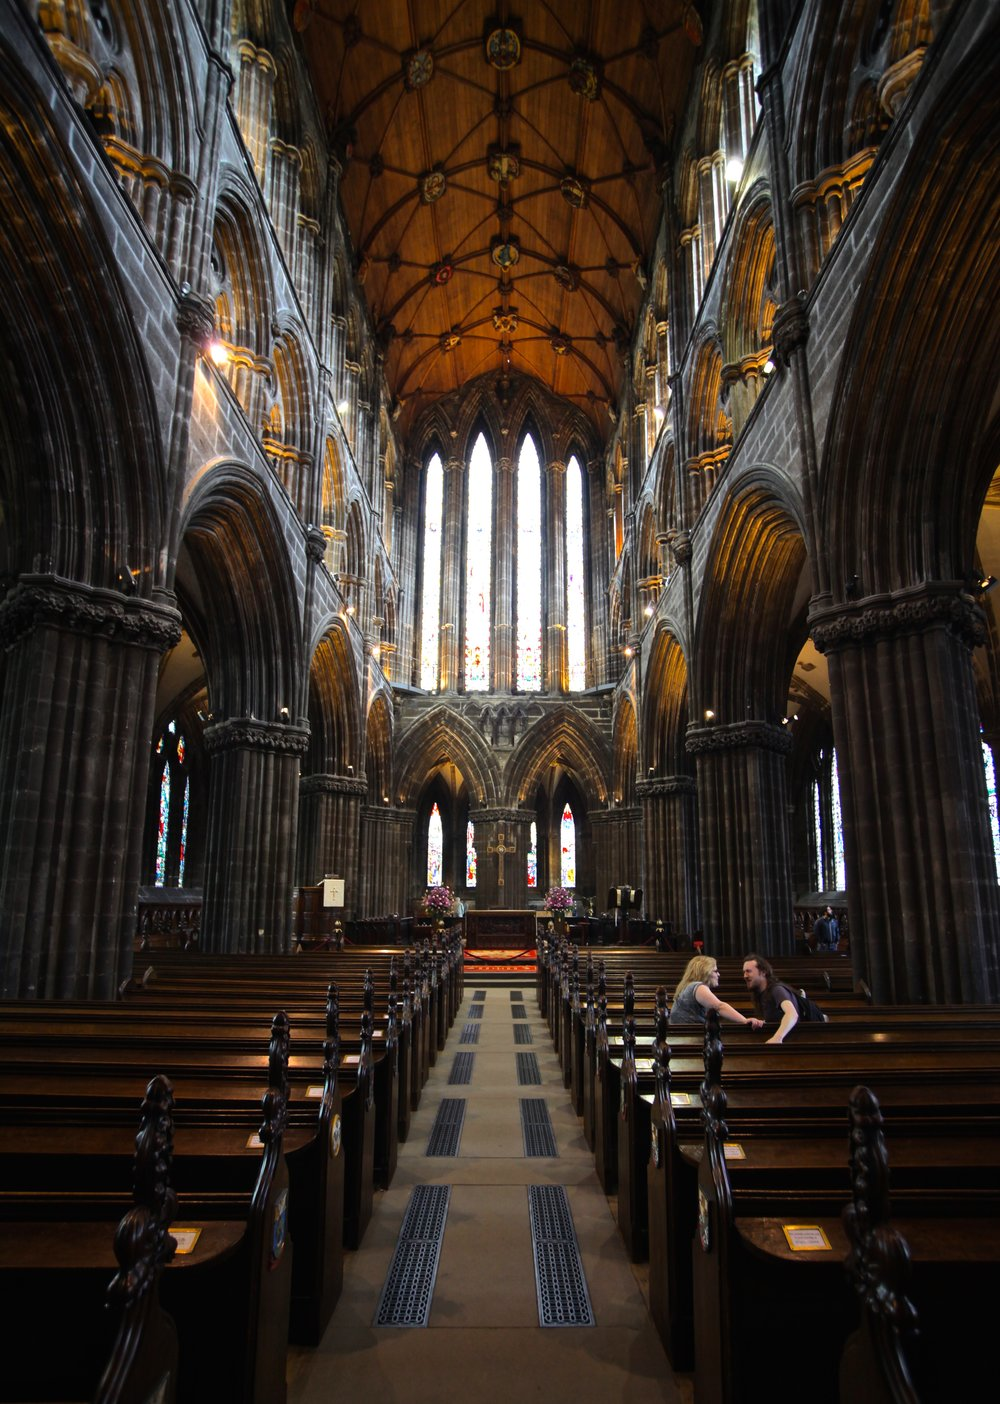 St. Patrick's Cathedral   Glasgow, Scotland